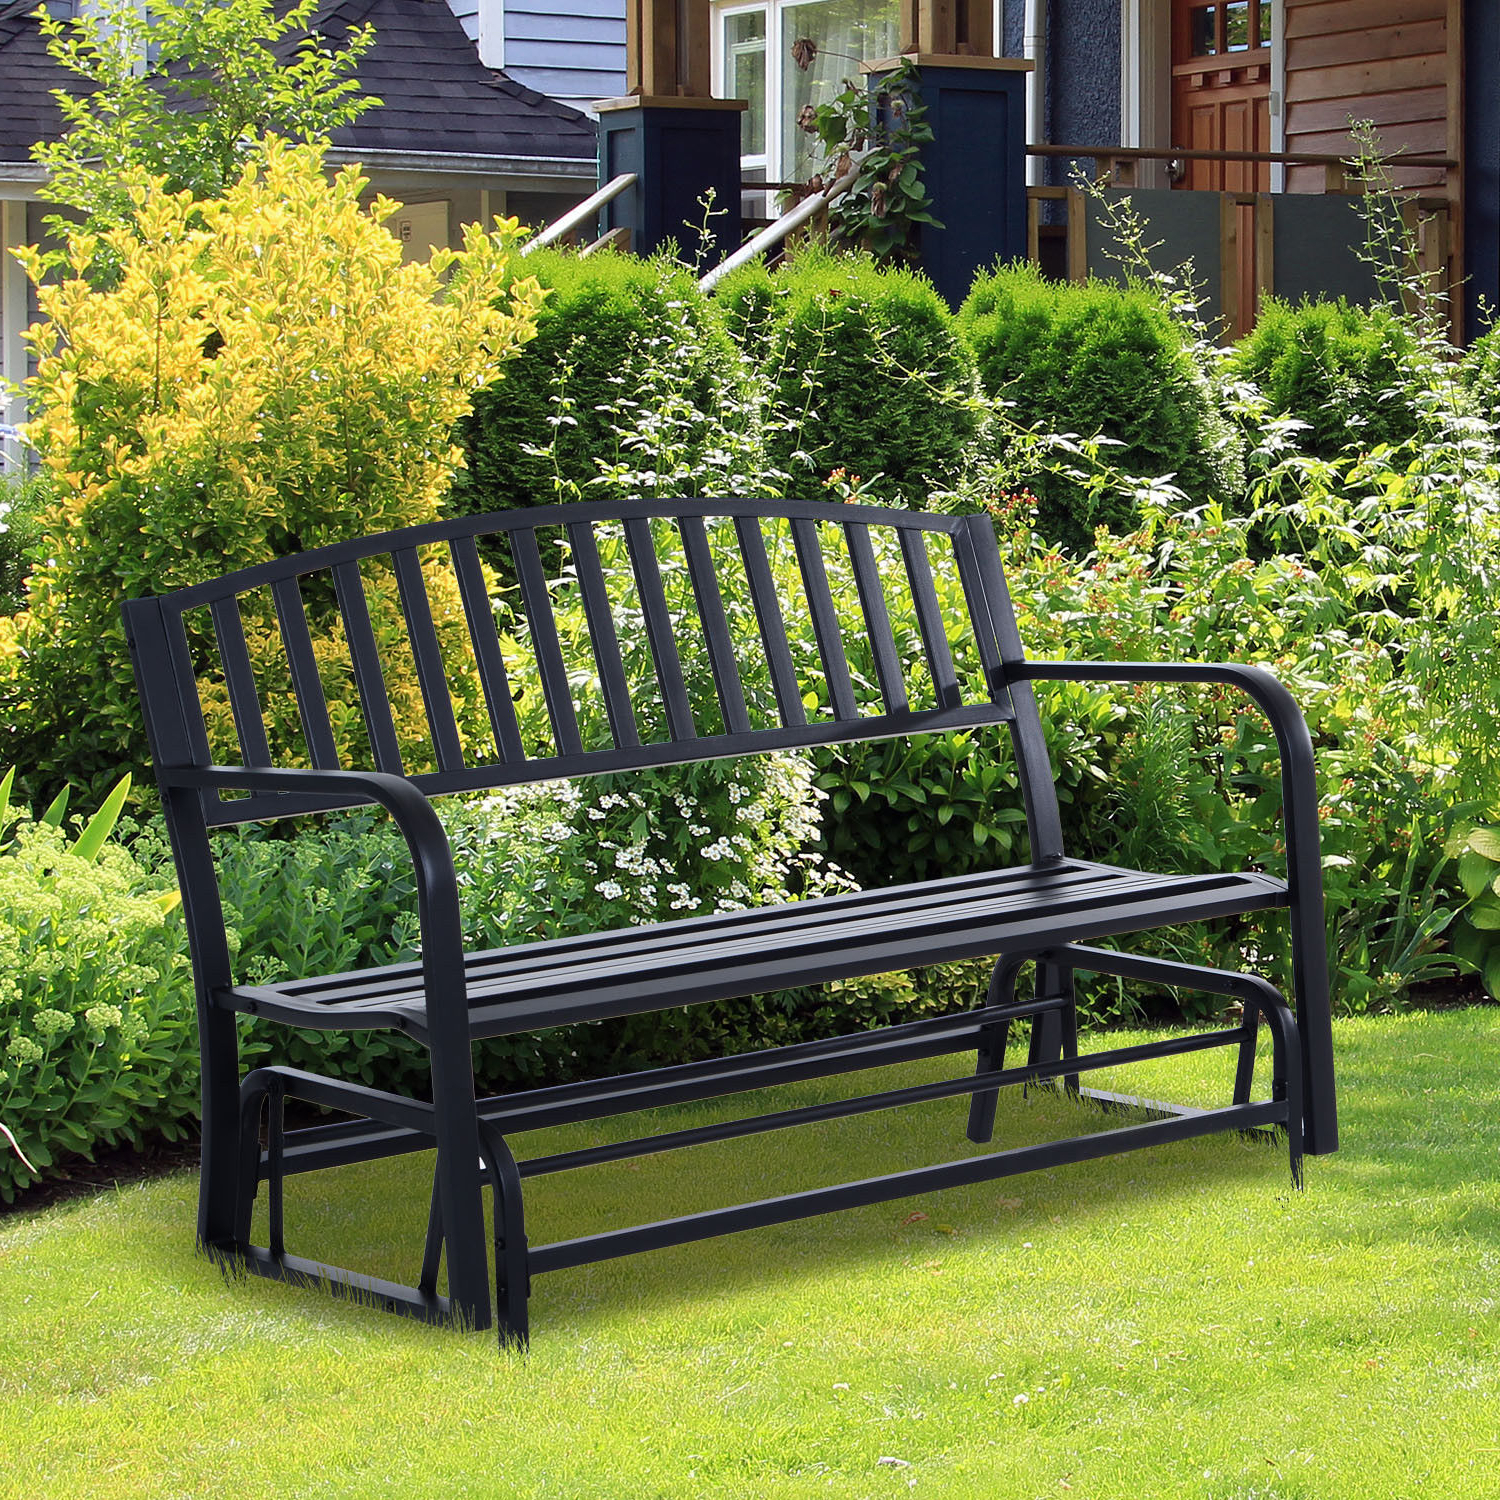 Well Liked Details About Patio Garden Glider 2 Person Outdoor Porch Bench Rocking  Chair Yard Furniture Intended For 1 Person Antique Black Steel Outdoor Gliders (Gallery 7 of 25)